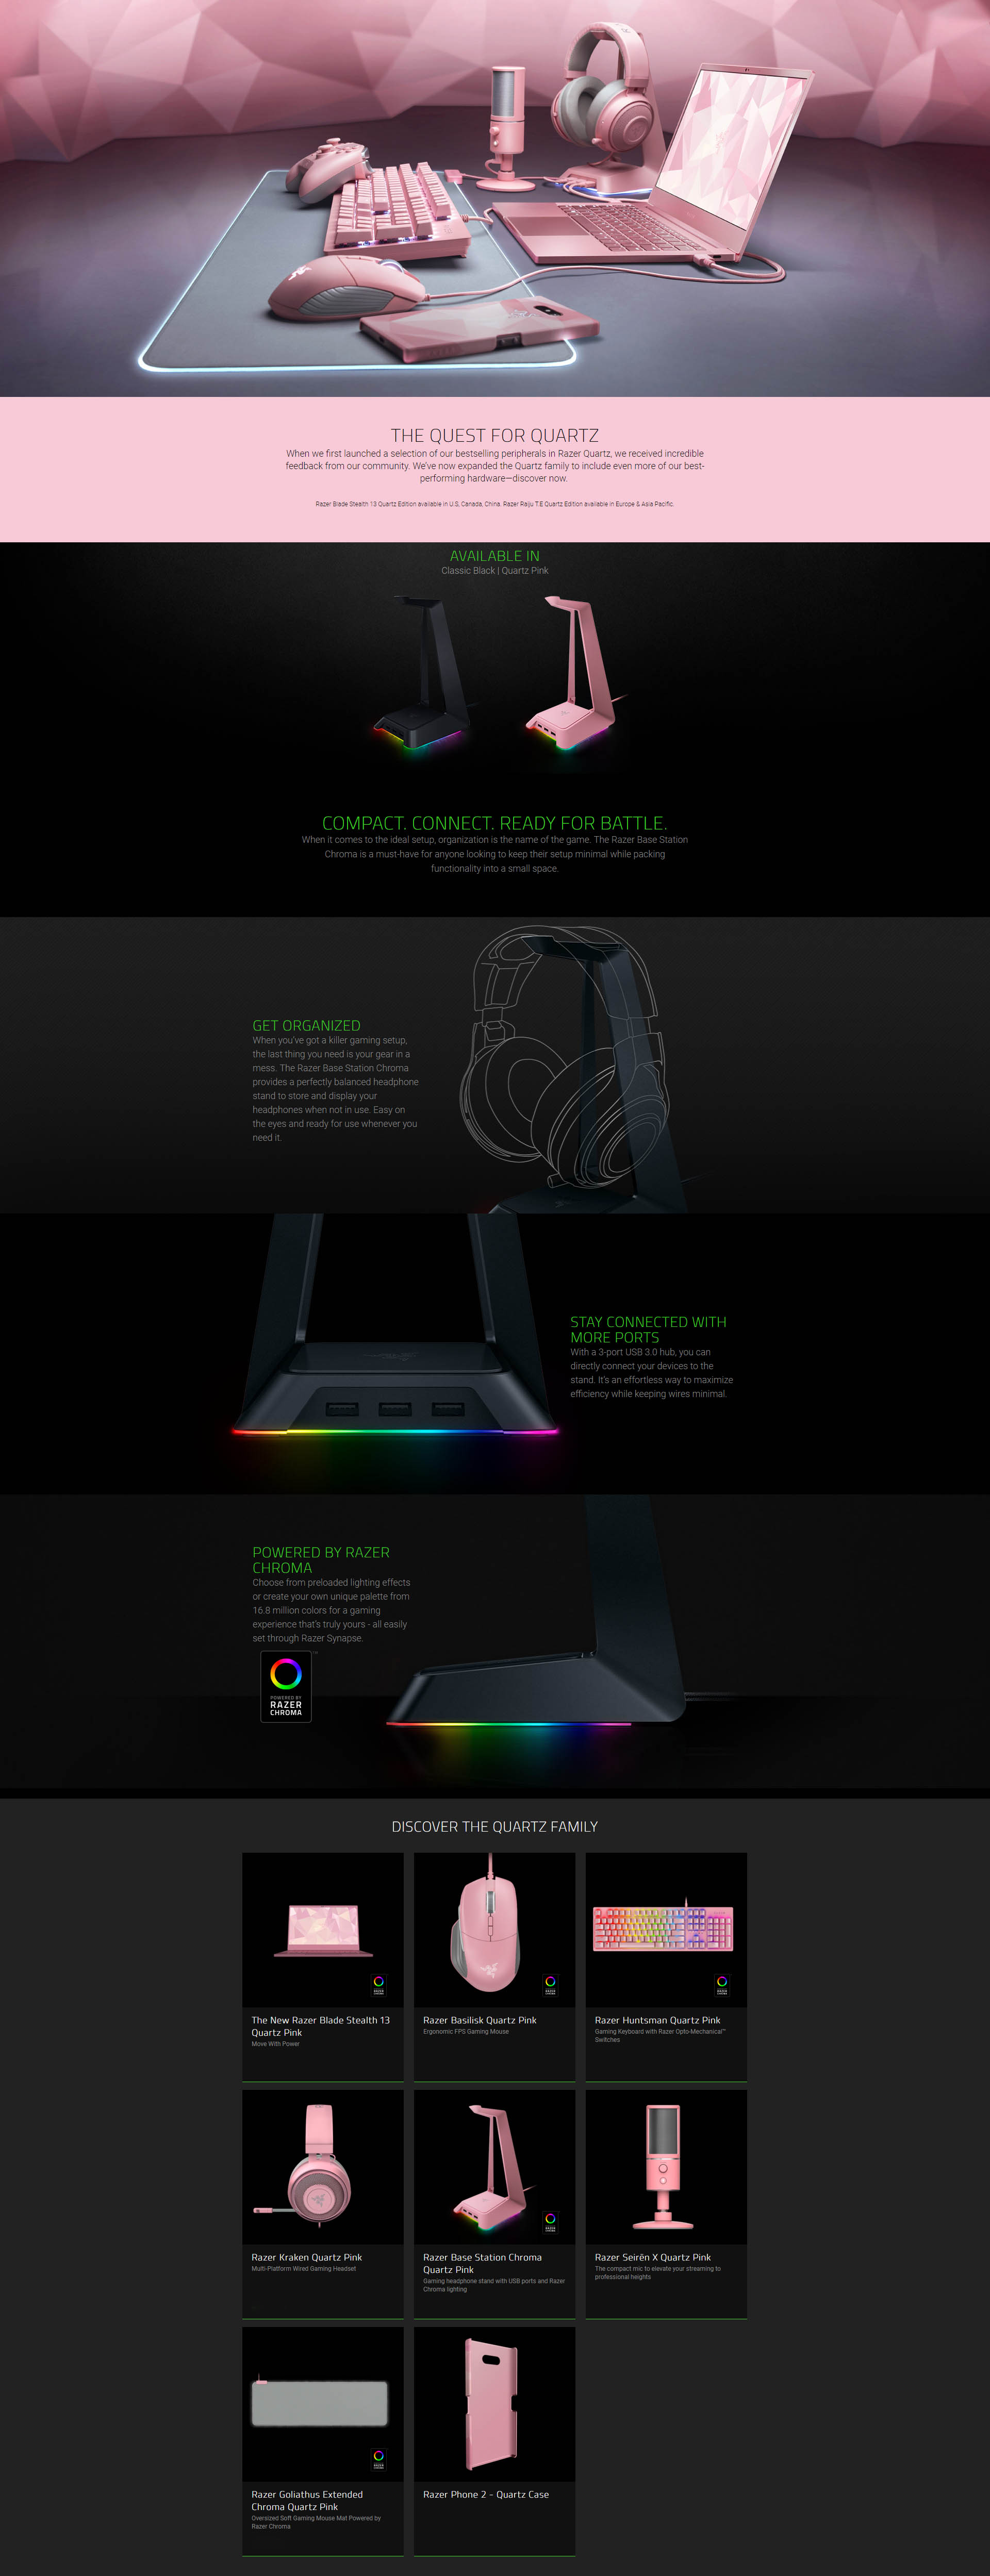 A large marketing image providing additional information about the product Razer Chroma Headset Stand & Base Station Quartz Pink - Additional alt info not provided